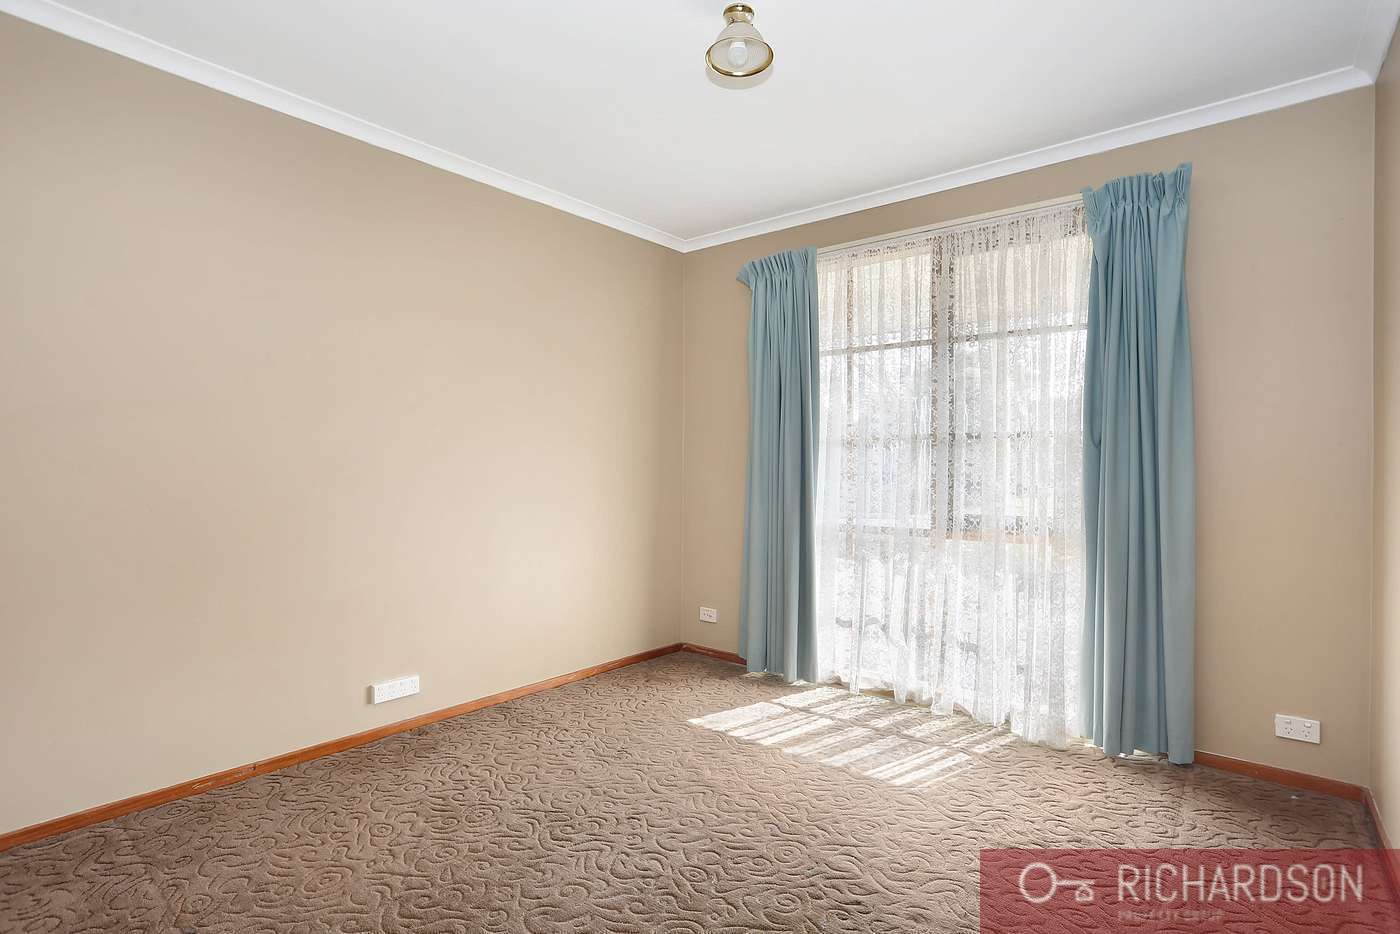 Seventh view of Homely house listing, 1 Elliot Court, Hoppers Crossing VIC 3029